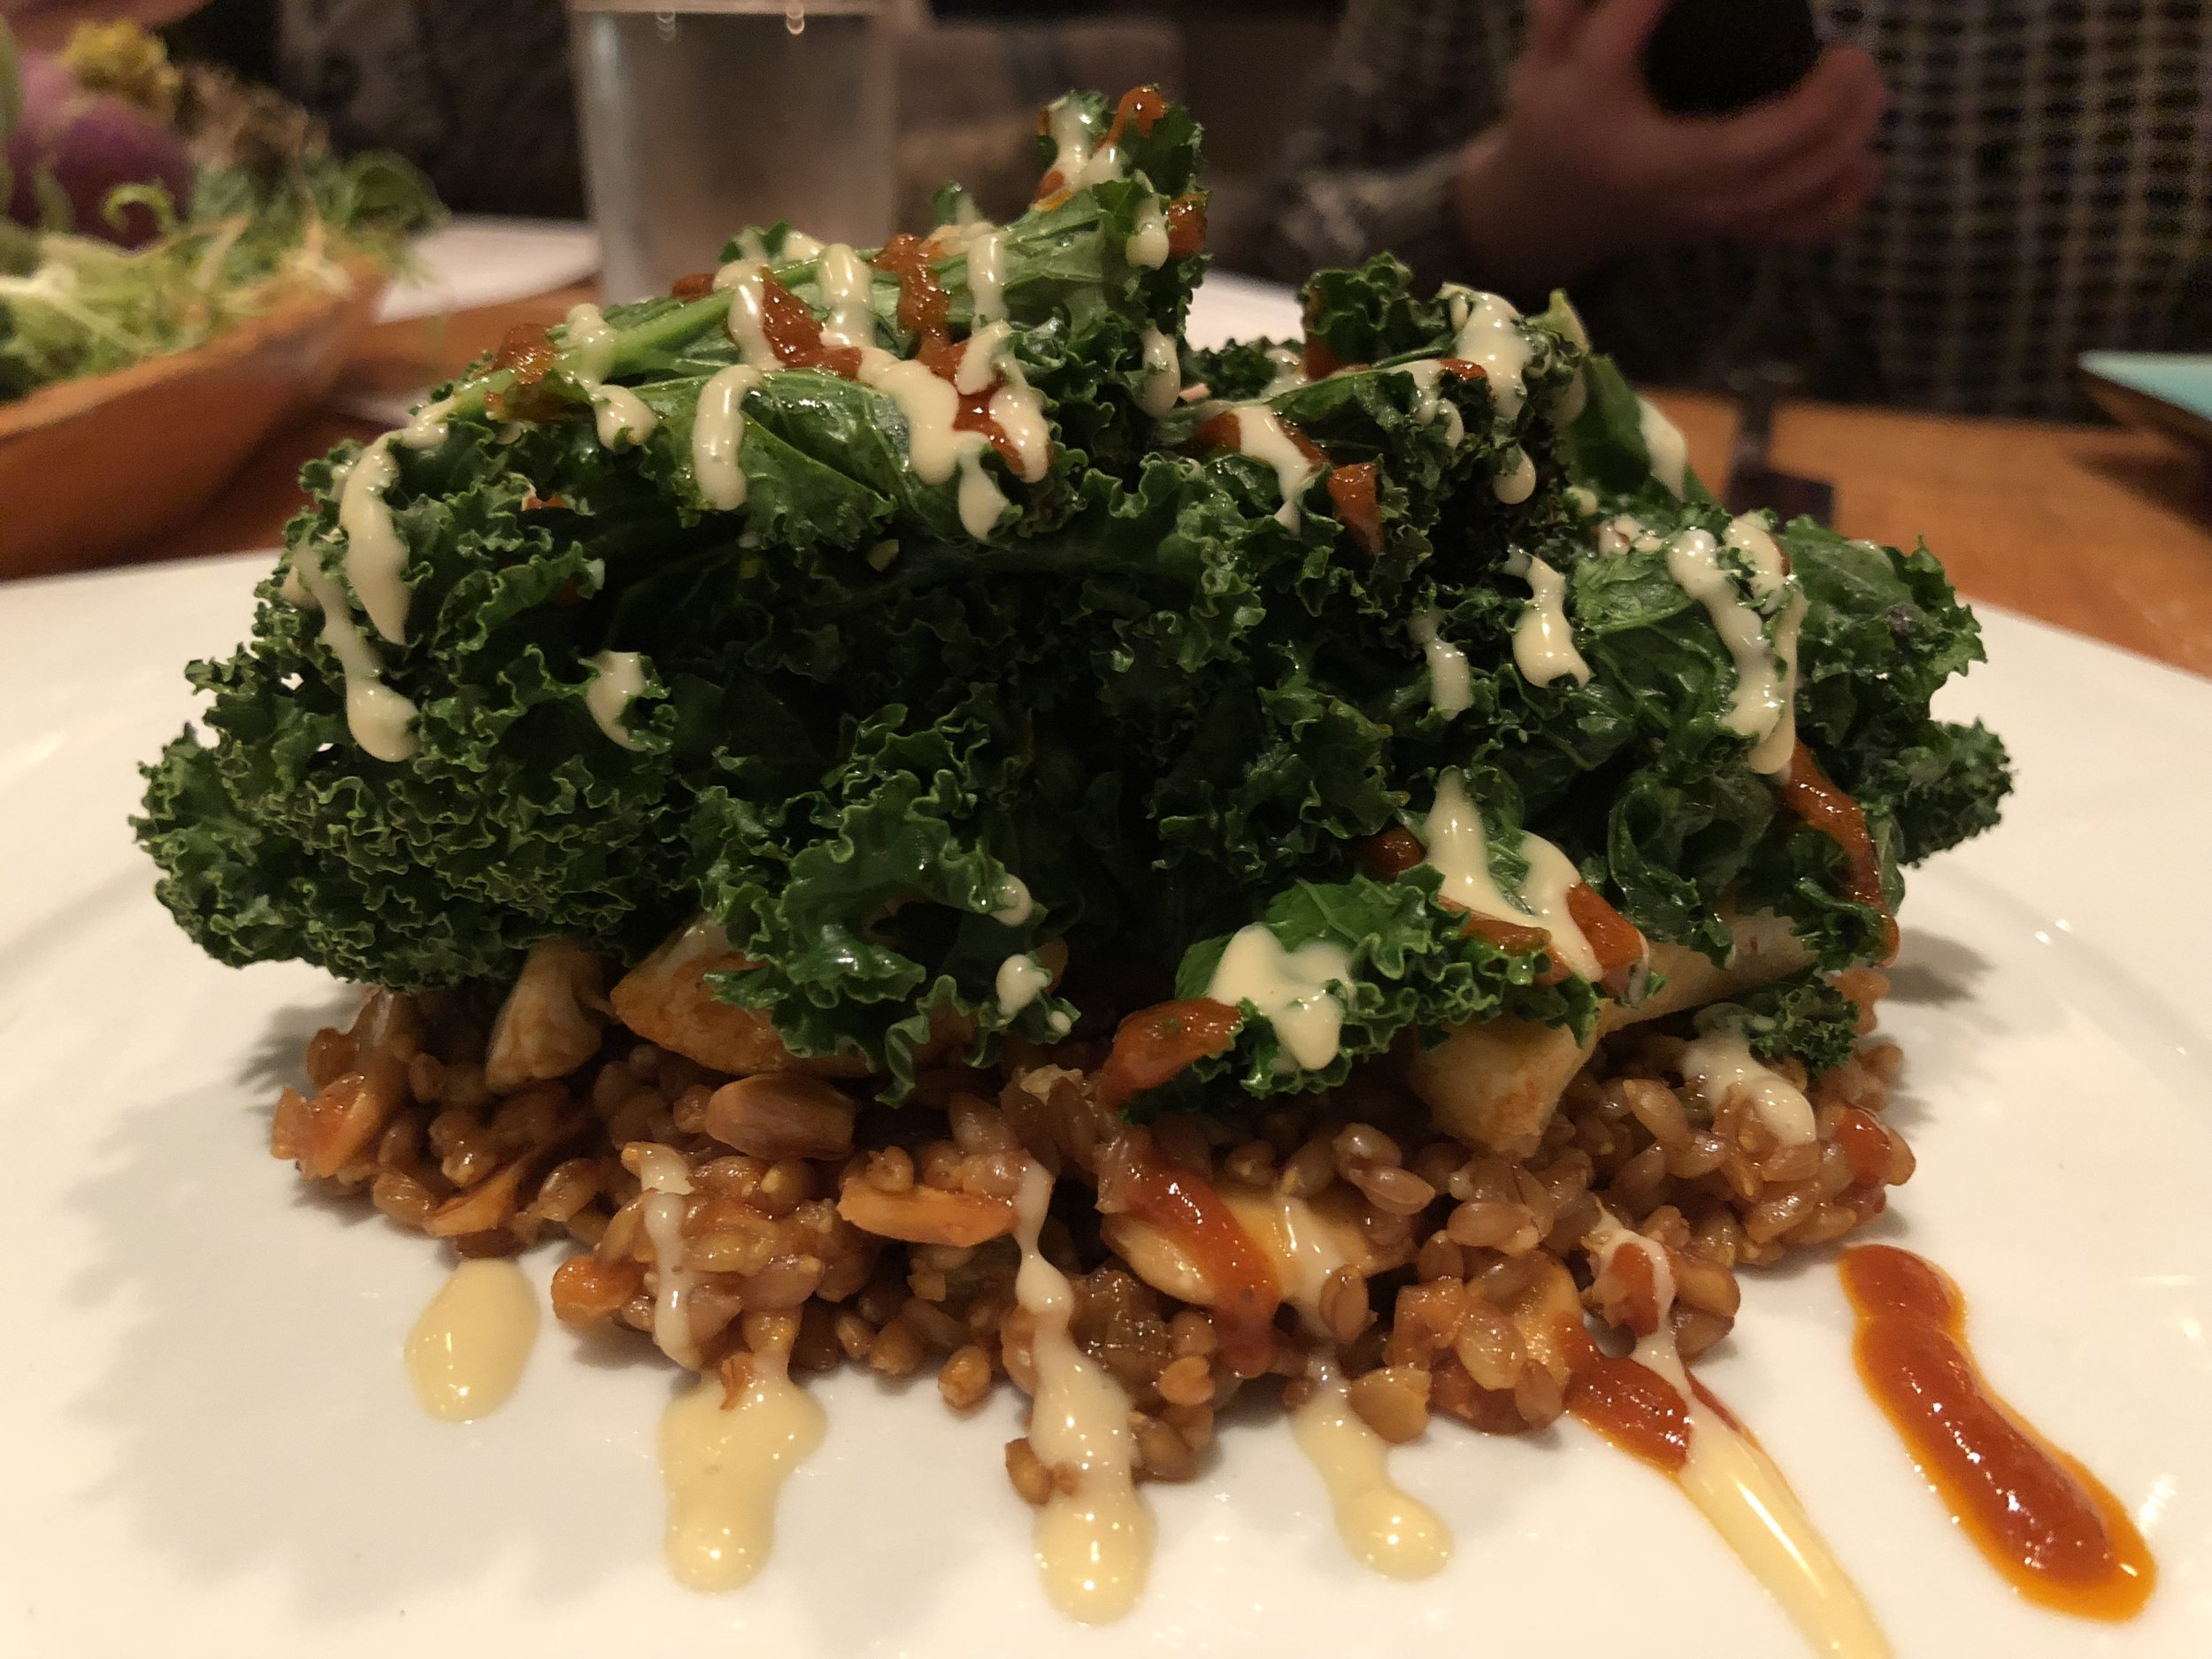 Roasted Kale & Farro Salad - Farro. Kale. Cauliflower. Golden Raisins. Marcona Almonds. Tahini Dressing.